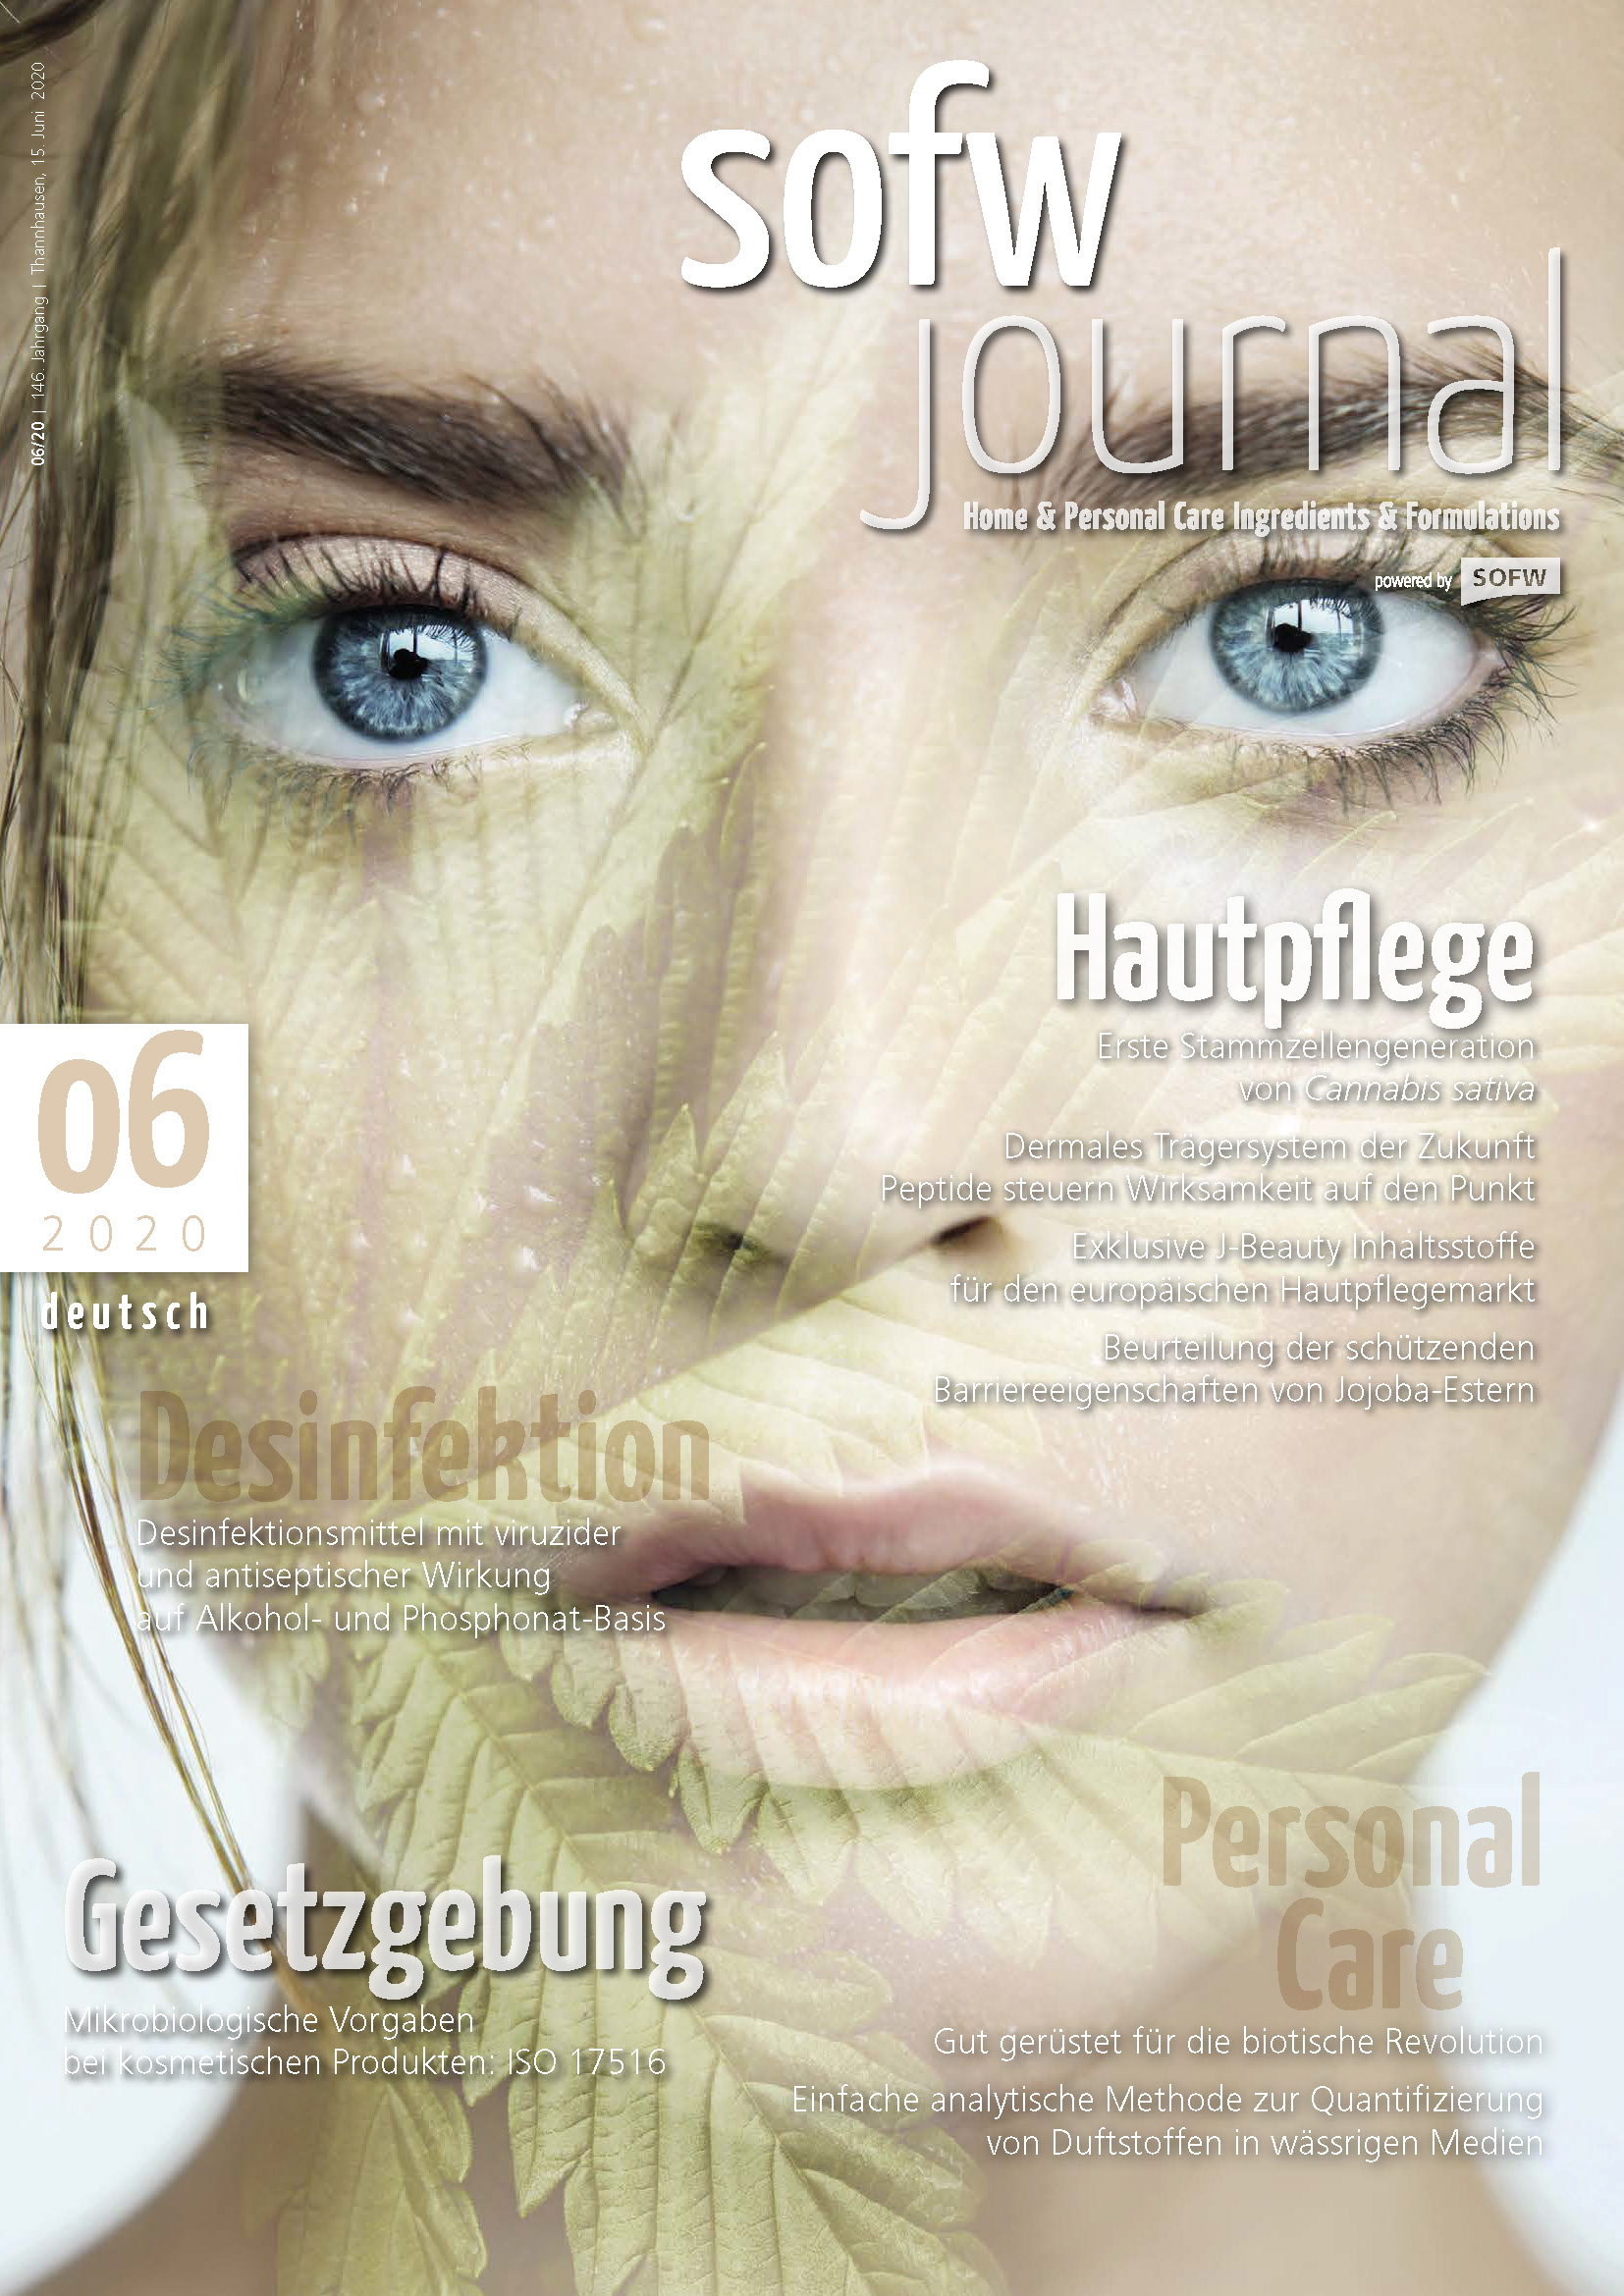 sofw_2006_ger_cover_505883500